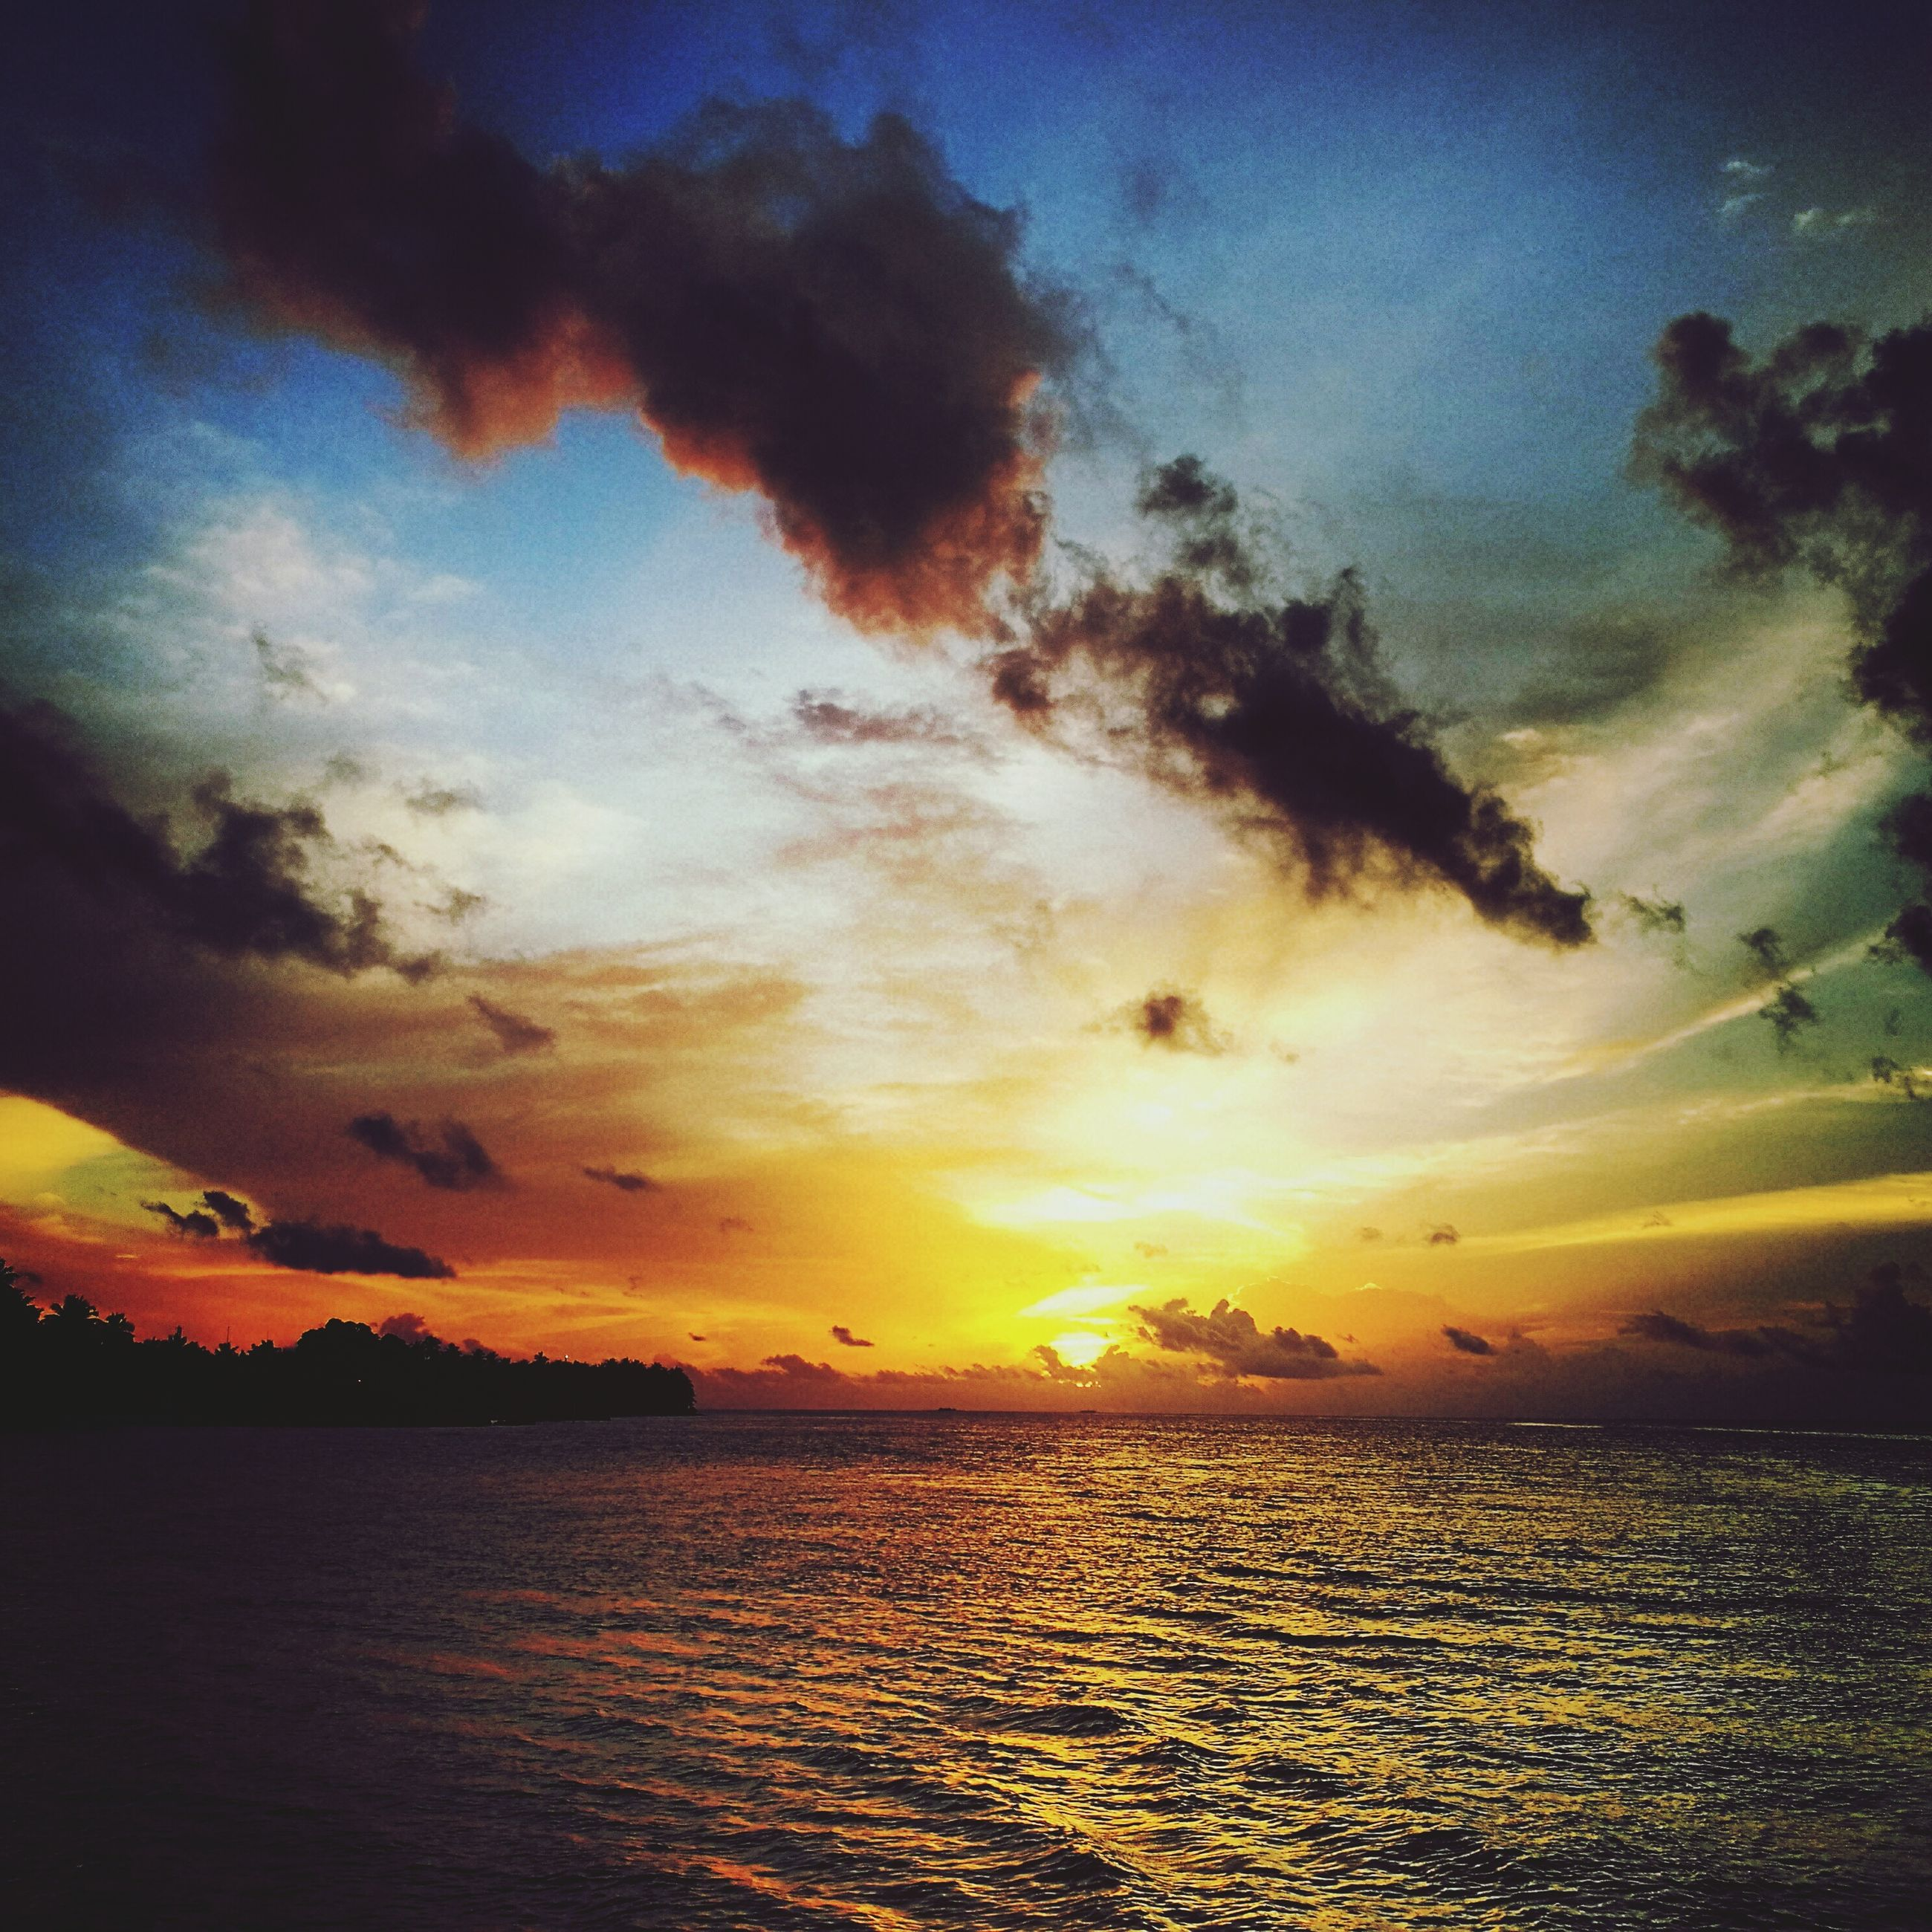 sunset, scenics, tranquil scene, water, sea, tranquility, waterfront, beauty in nature, horizon over water, idyllic, majestic, sky, orange color, rippled, dramatic sky, atmospheric mood, cloud, nature, cloud - sky, seascape, atmosphere, calm, moody sky, sun, ocean, water surface, cloudscape, remote, non-urban scene, vibrant color, romantic sky, outdoors, cloudy, back lit